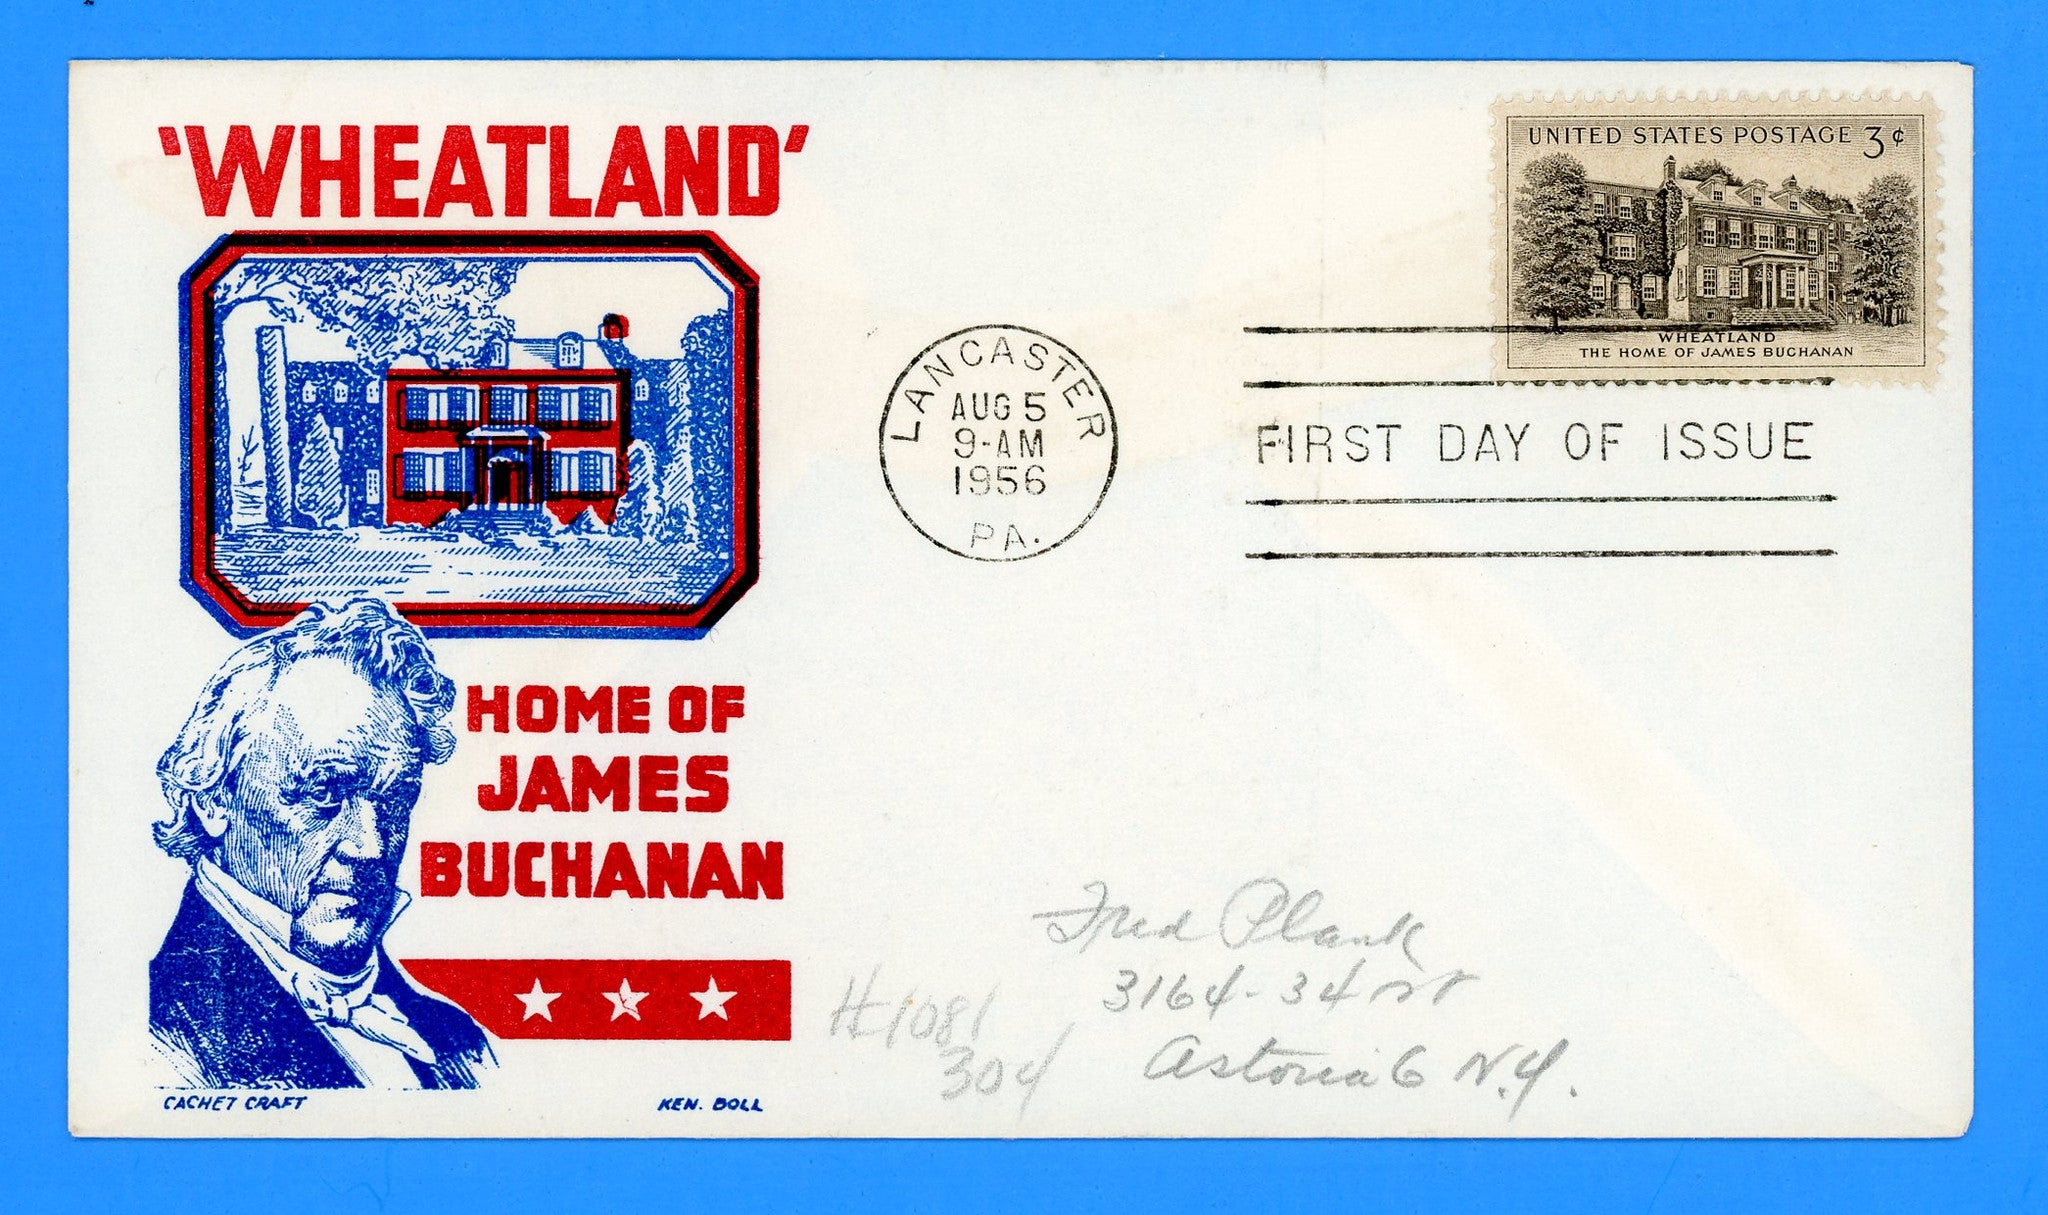 Scott 1081 Wheatland, James Buchanan First Day Cover by Cachet Craft/Boll